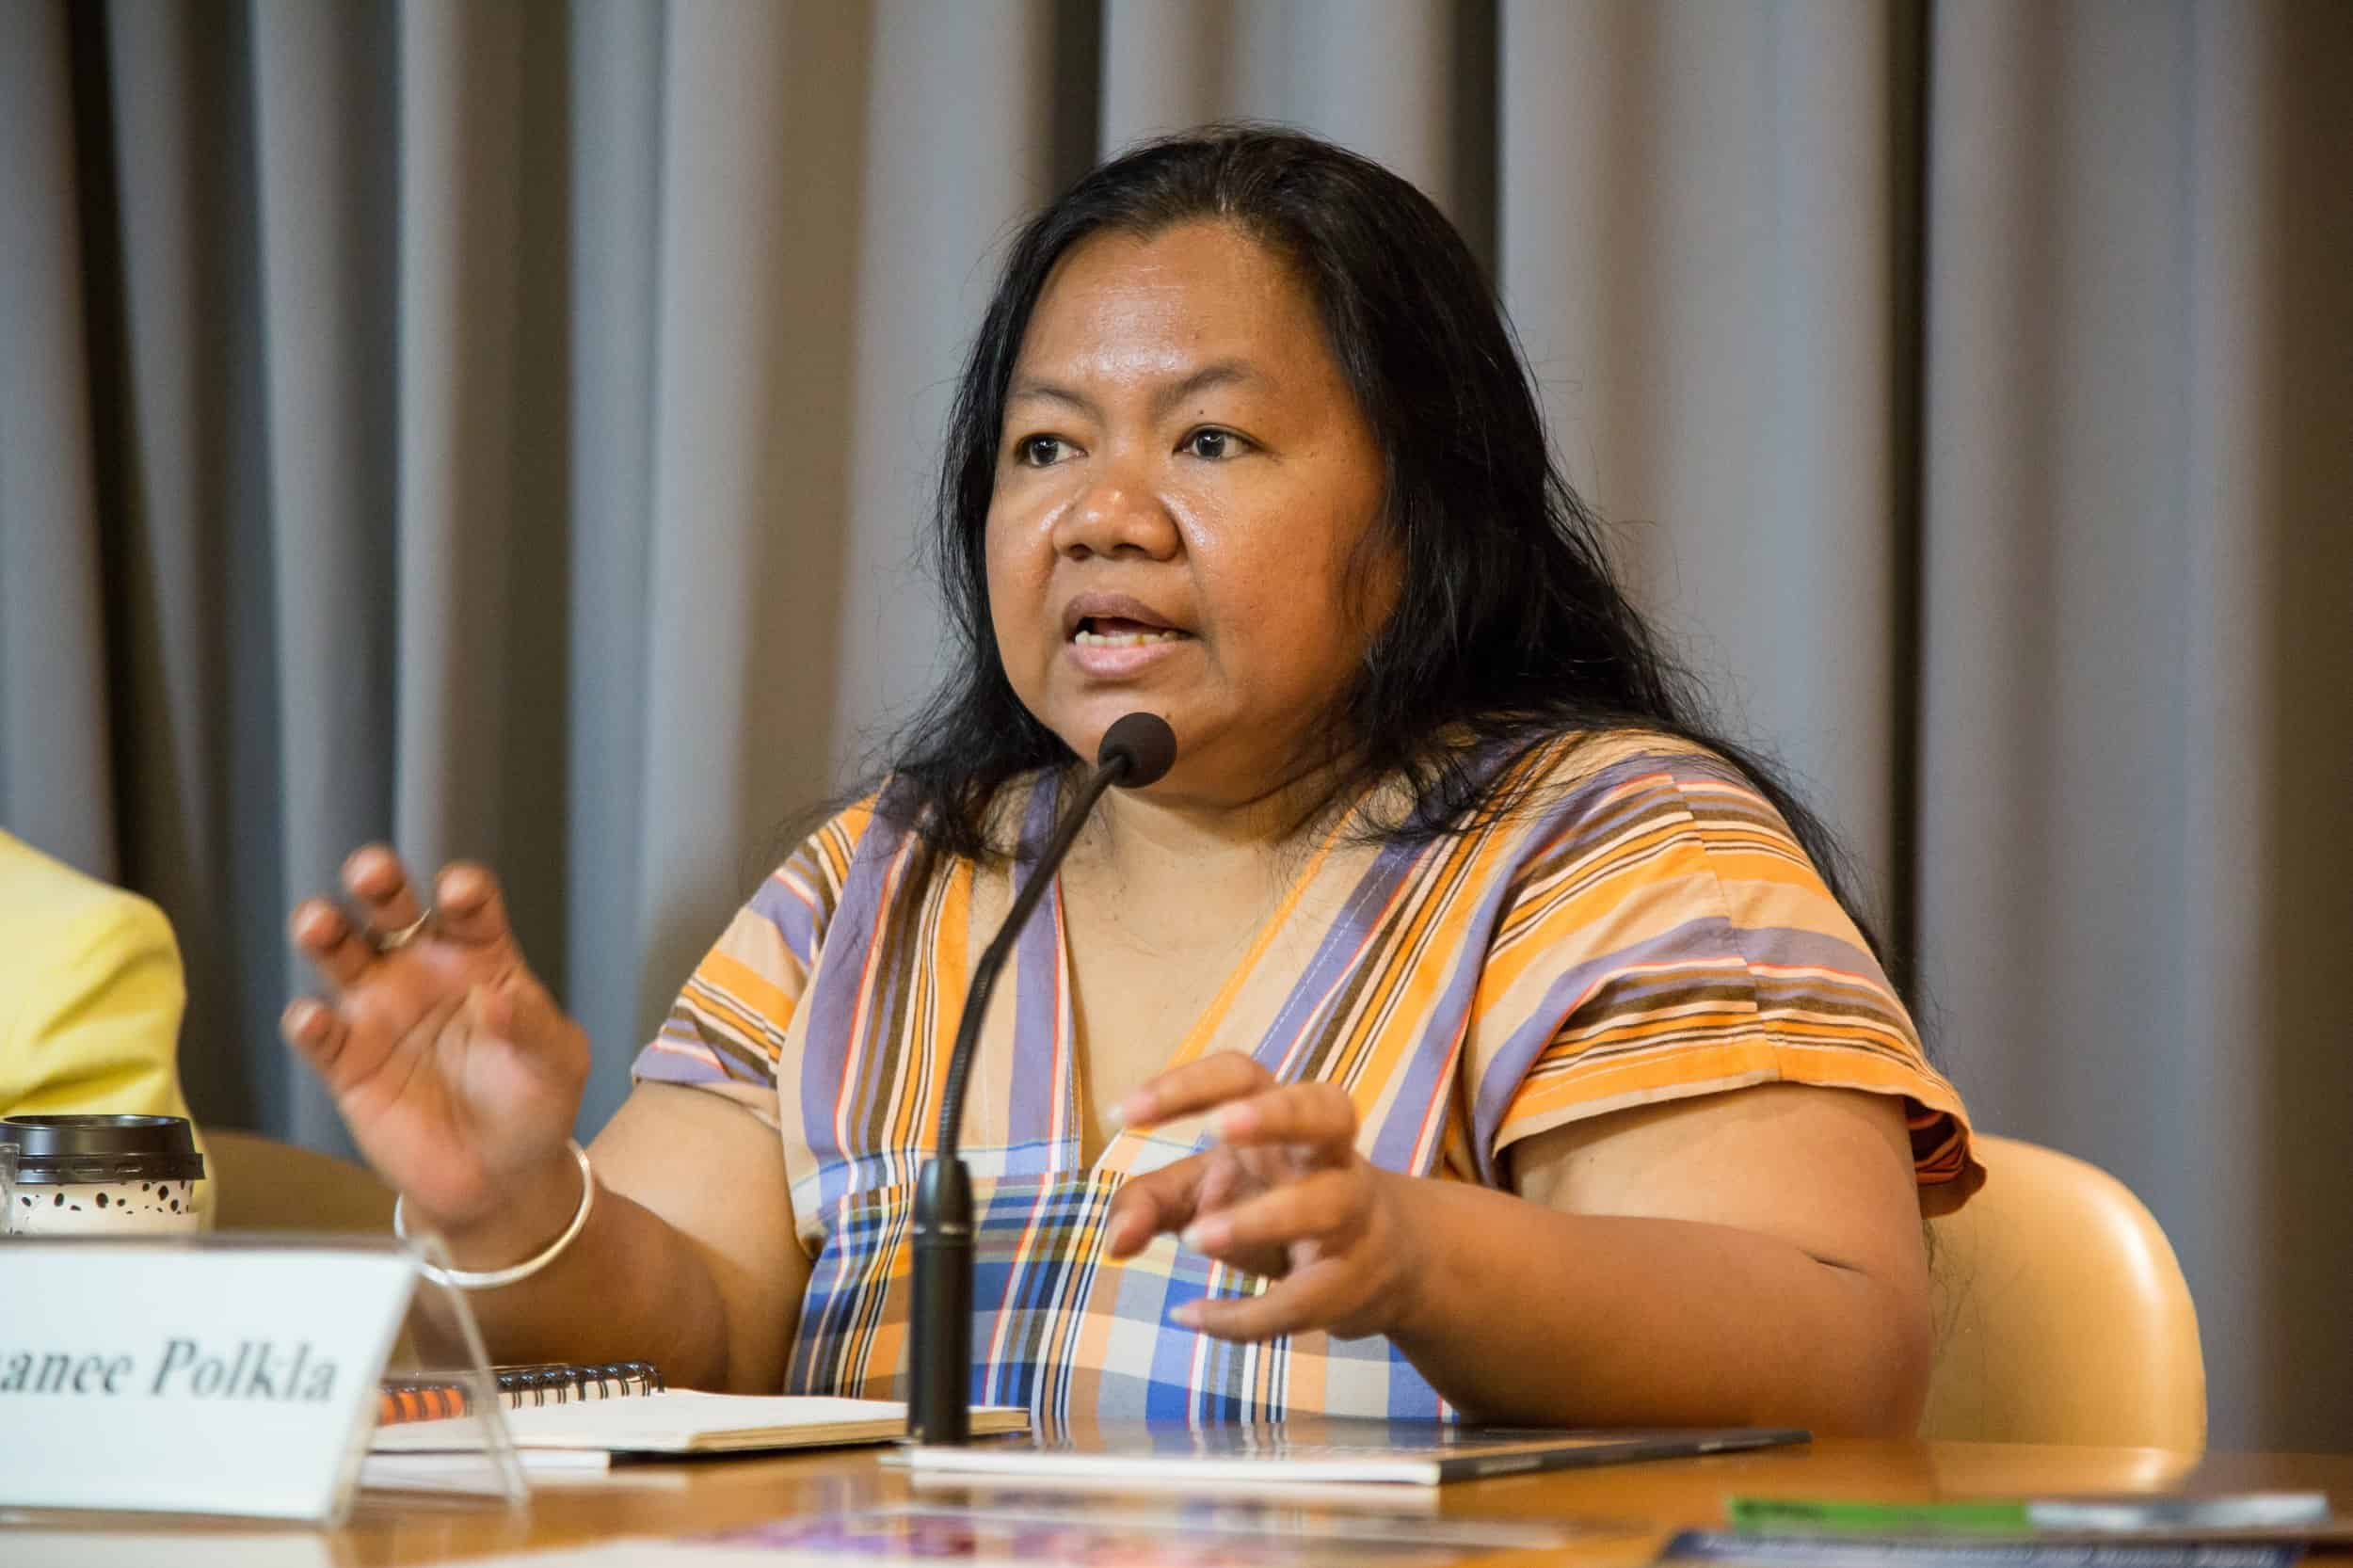 Sor Rattanamanee Polkla, Executive Coordinator of the Community Resource Centre Foundation, speaks about the need for binding legislation to regulate Thai corporations.